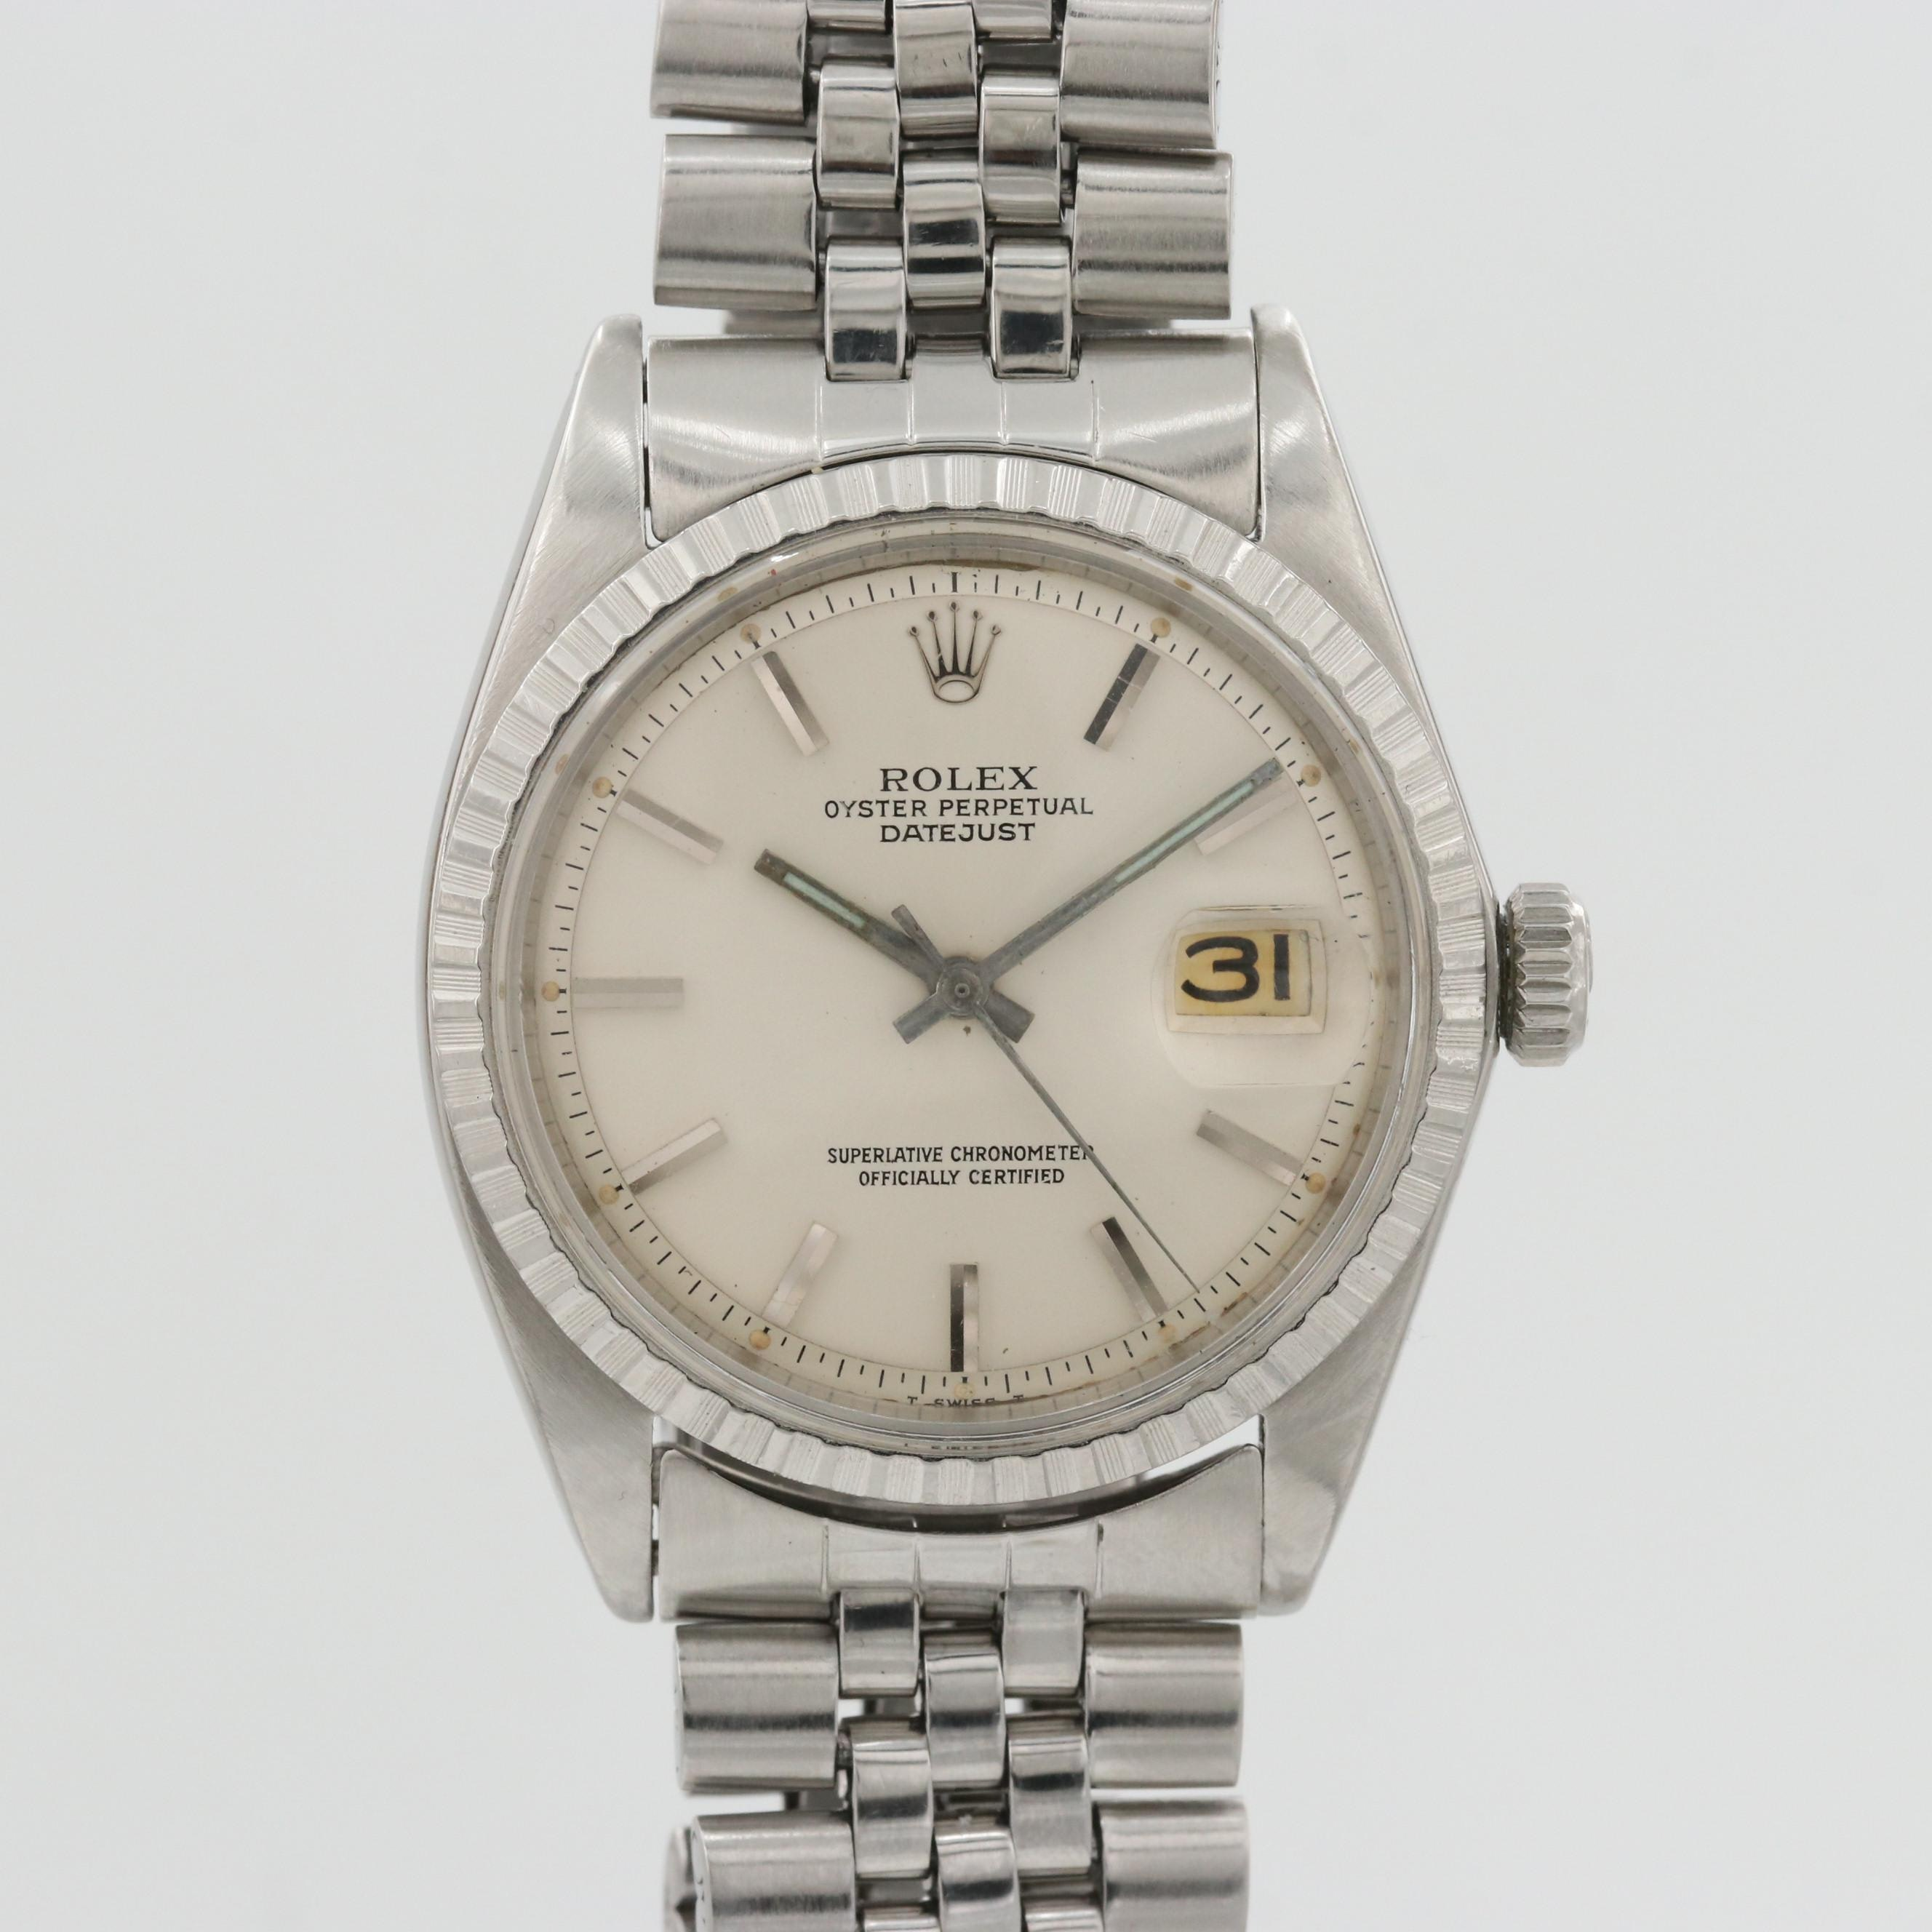 Vintage Rolex Datejust Stainless Steel Automatic Wristwatch, 1965